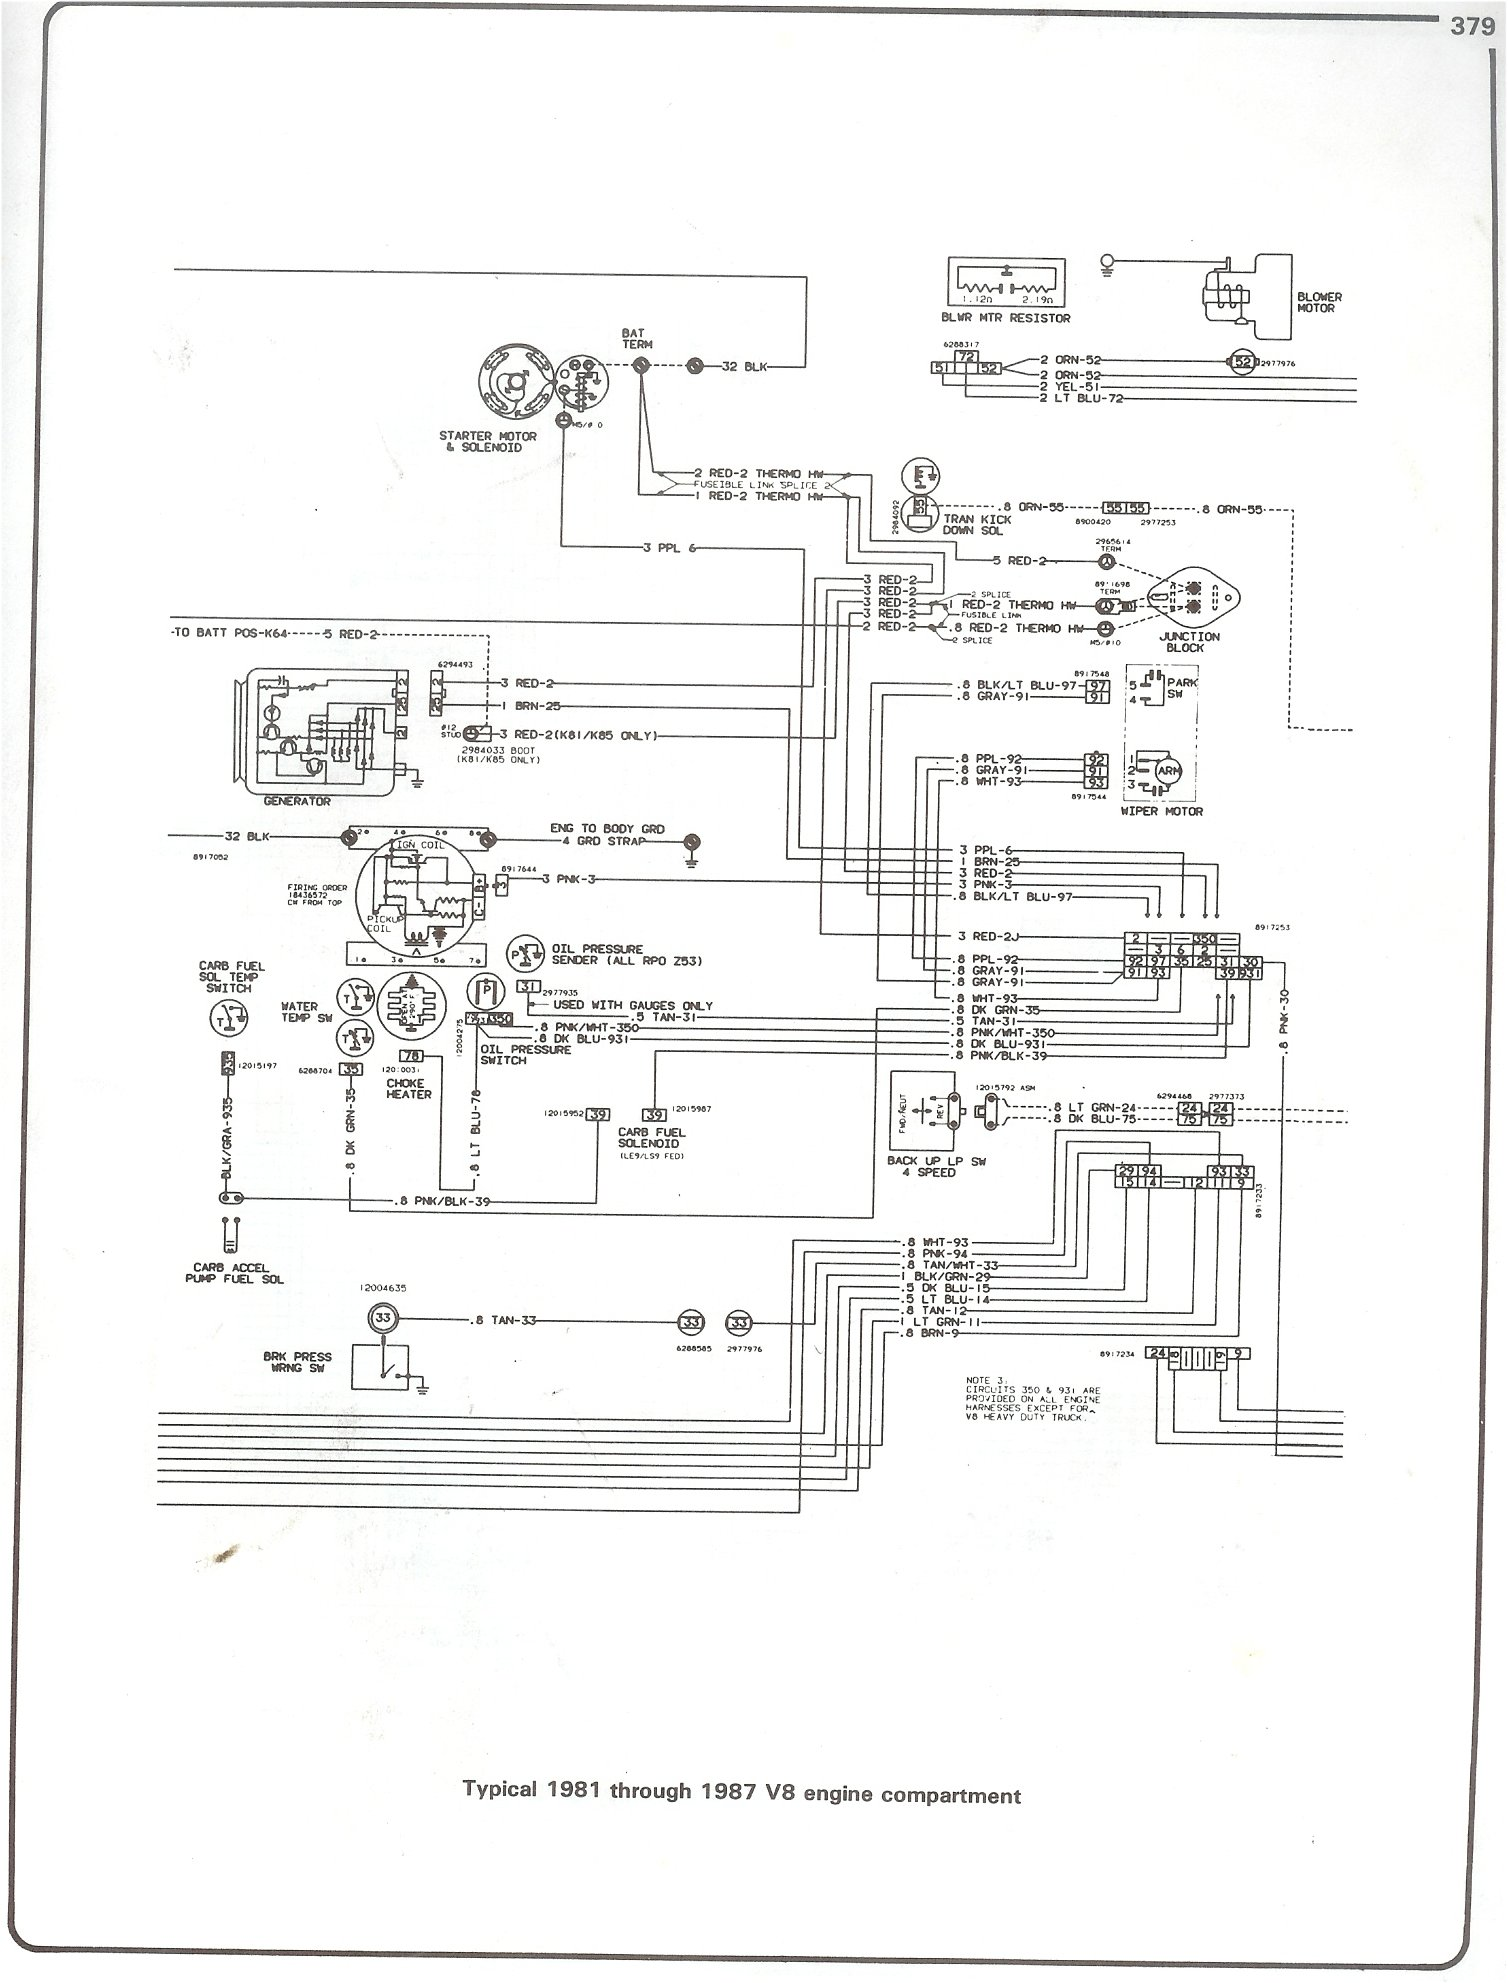 72 Chevy Blazer Fuse Box Wire Data Schema Bphha Bussr Fuses Addacircuit Holder For Atc Fastenal Electrical Diagrams Only Page 2 Truck Forum 69 K5